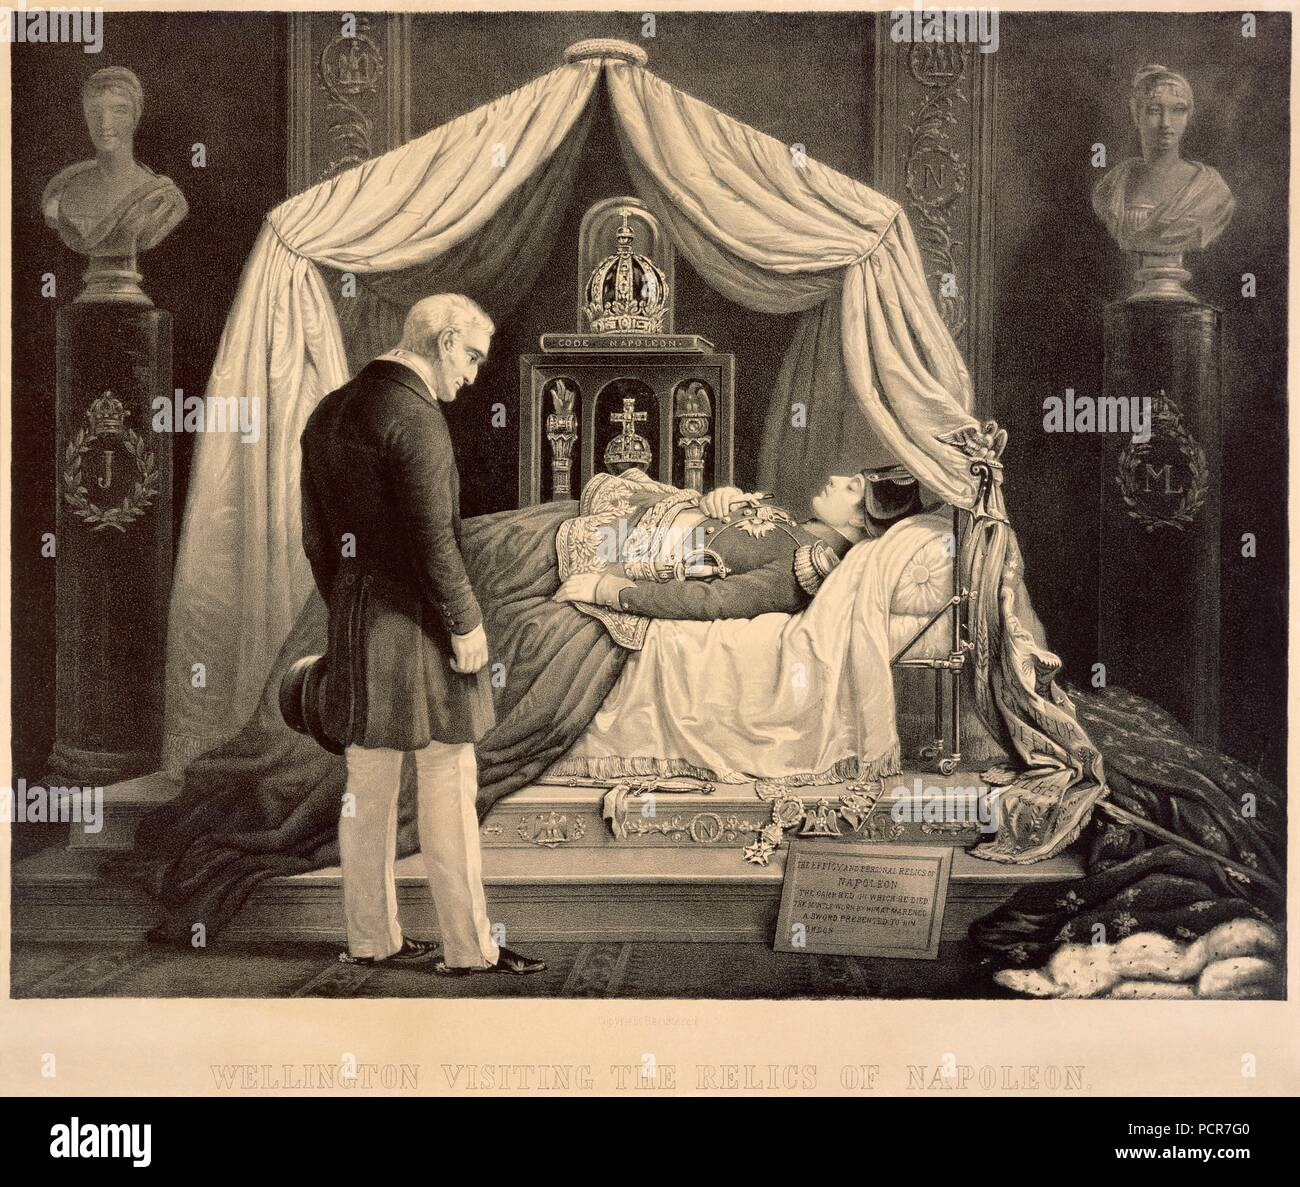 Wellington Visiting the Relics of Napoleon, 19th century.. Engraving in Apsley House, London. - Stock Image